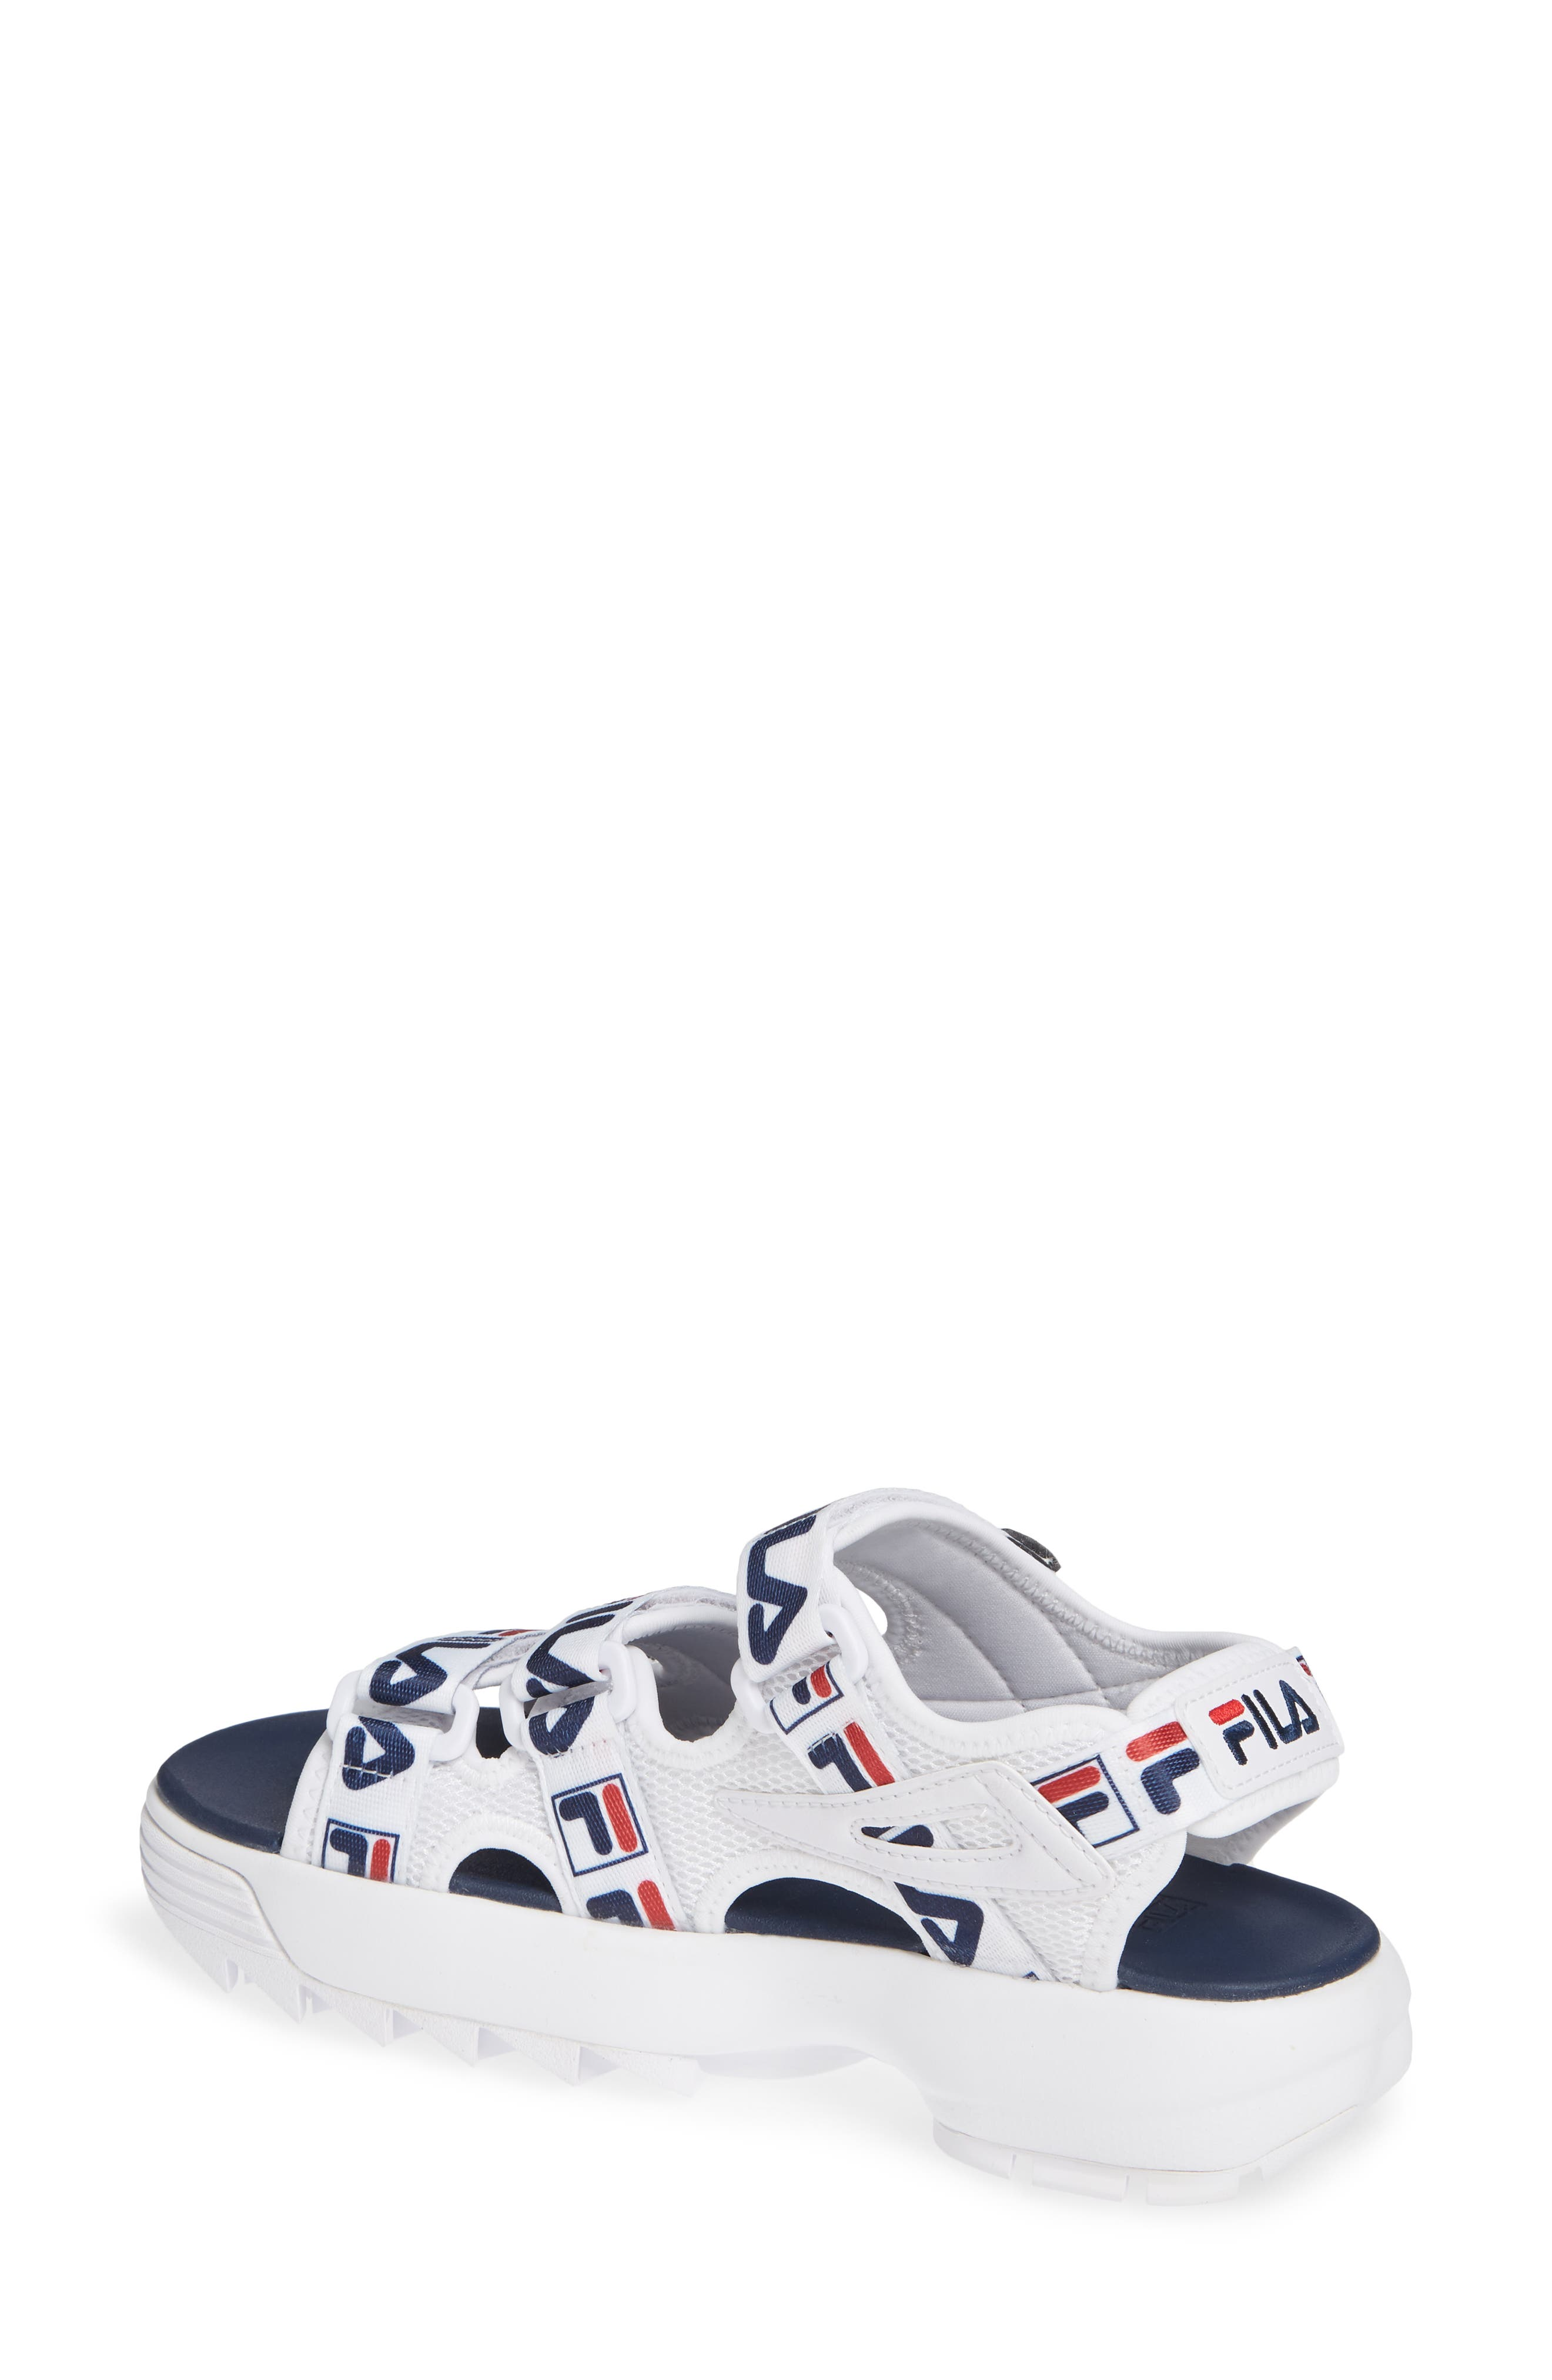 Disruptor Sandal,                             Alternate thumbnail 2, color,                             WHITE/ FILA NAVY